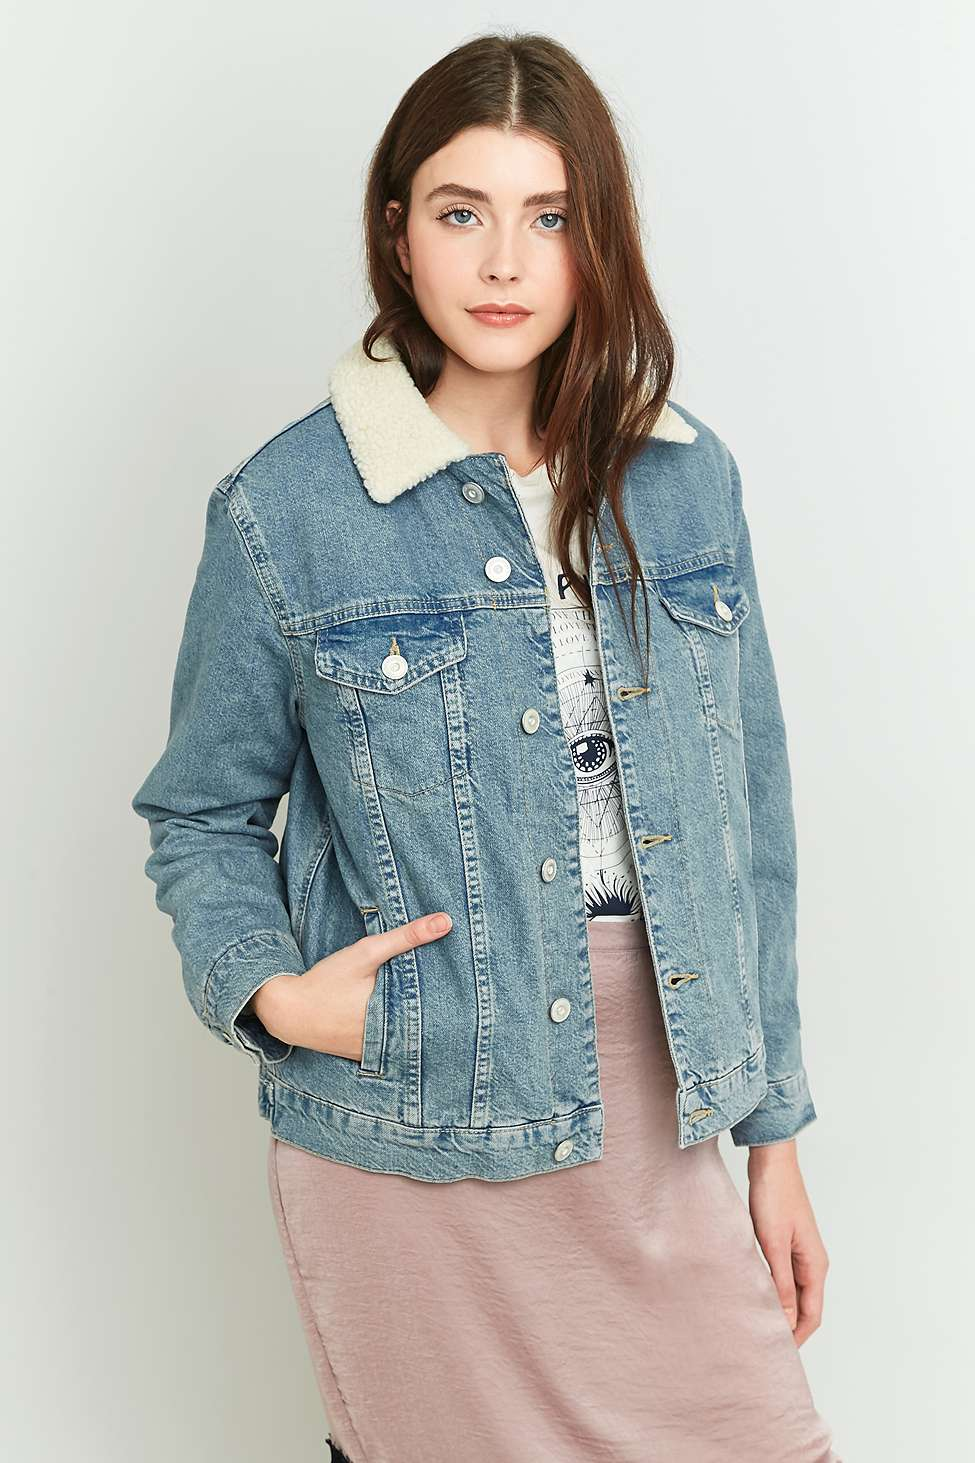 How to wear a denim jacket in winter